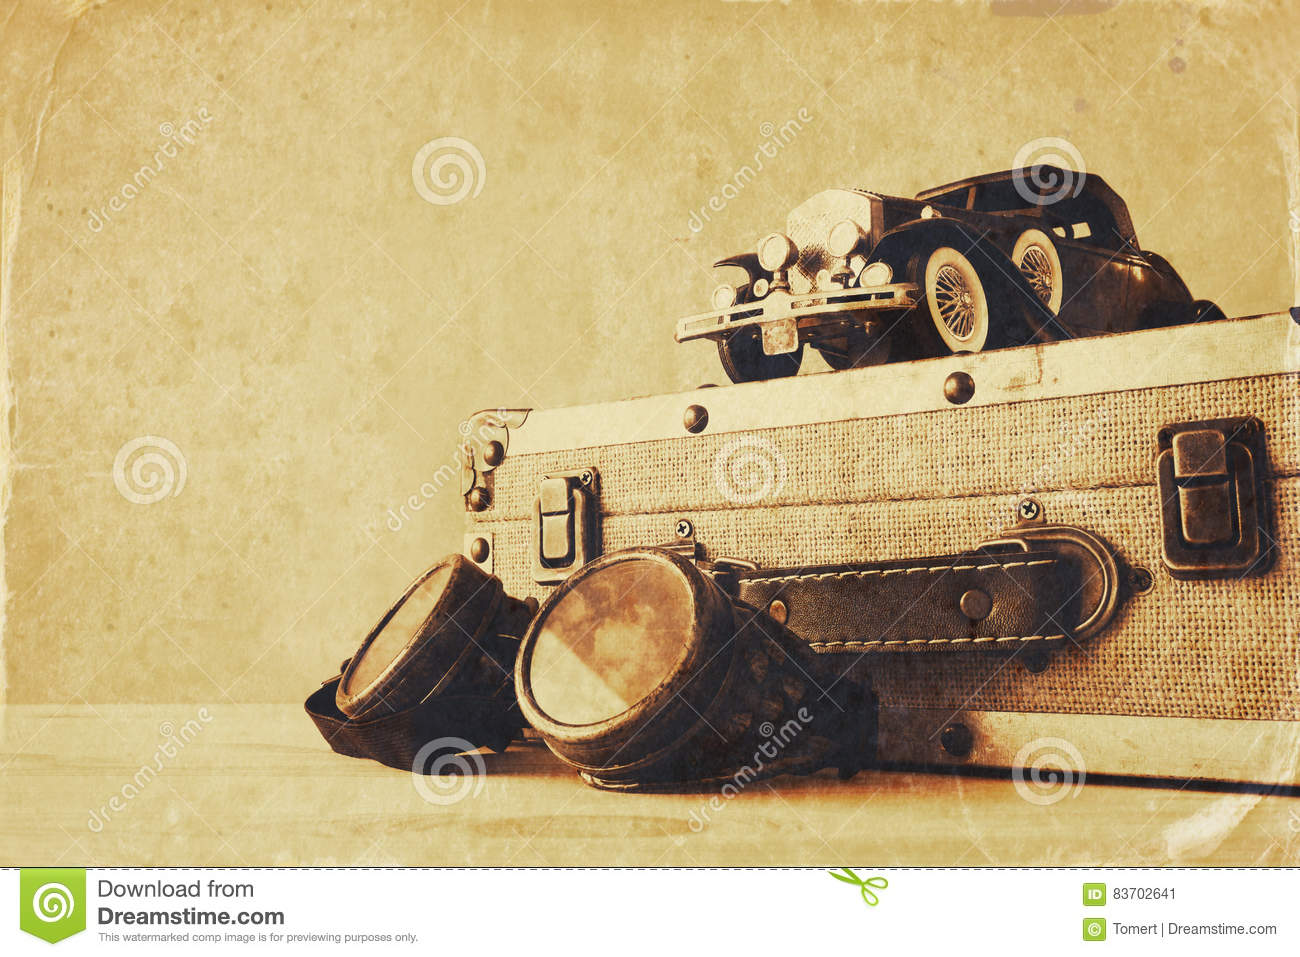 Vintage Toy Car And Old Suitcase Next To Pilot Glasses Stock Photo